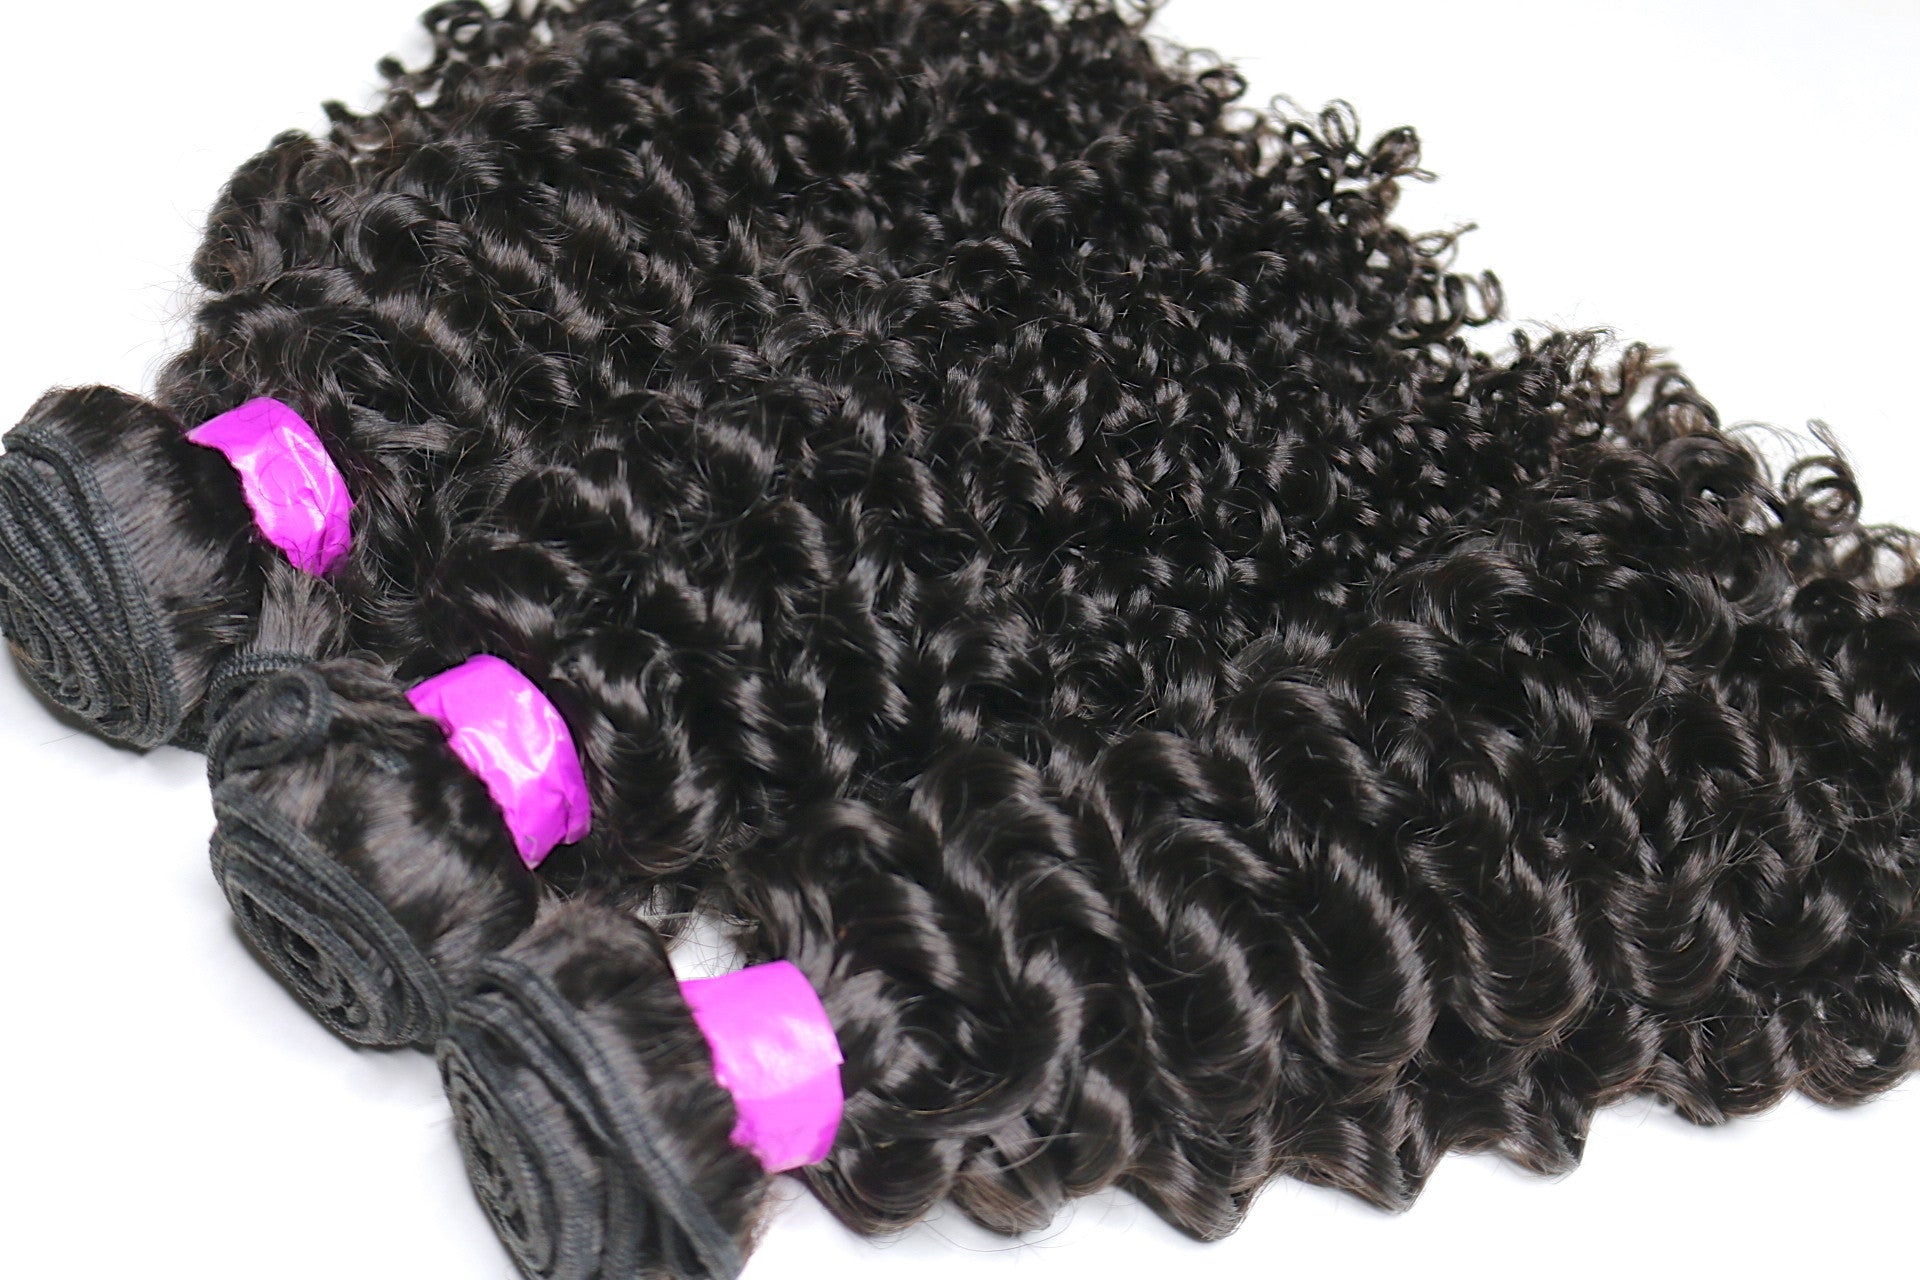 RADIANCE BRAZILIAN CURLY BUNDLE DEAL! CHRISTMAS SALE!